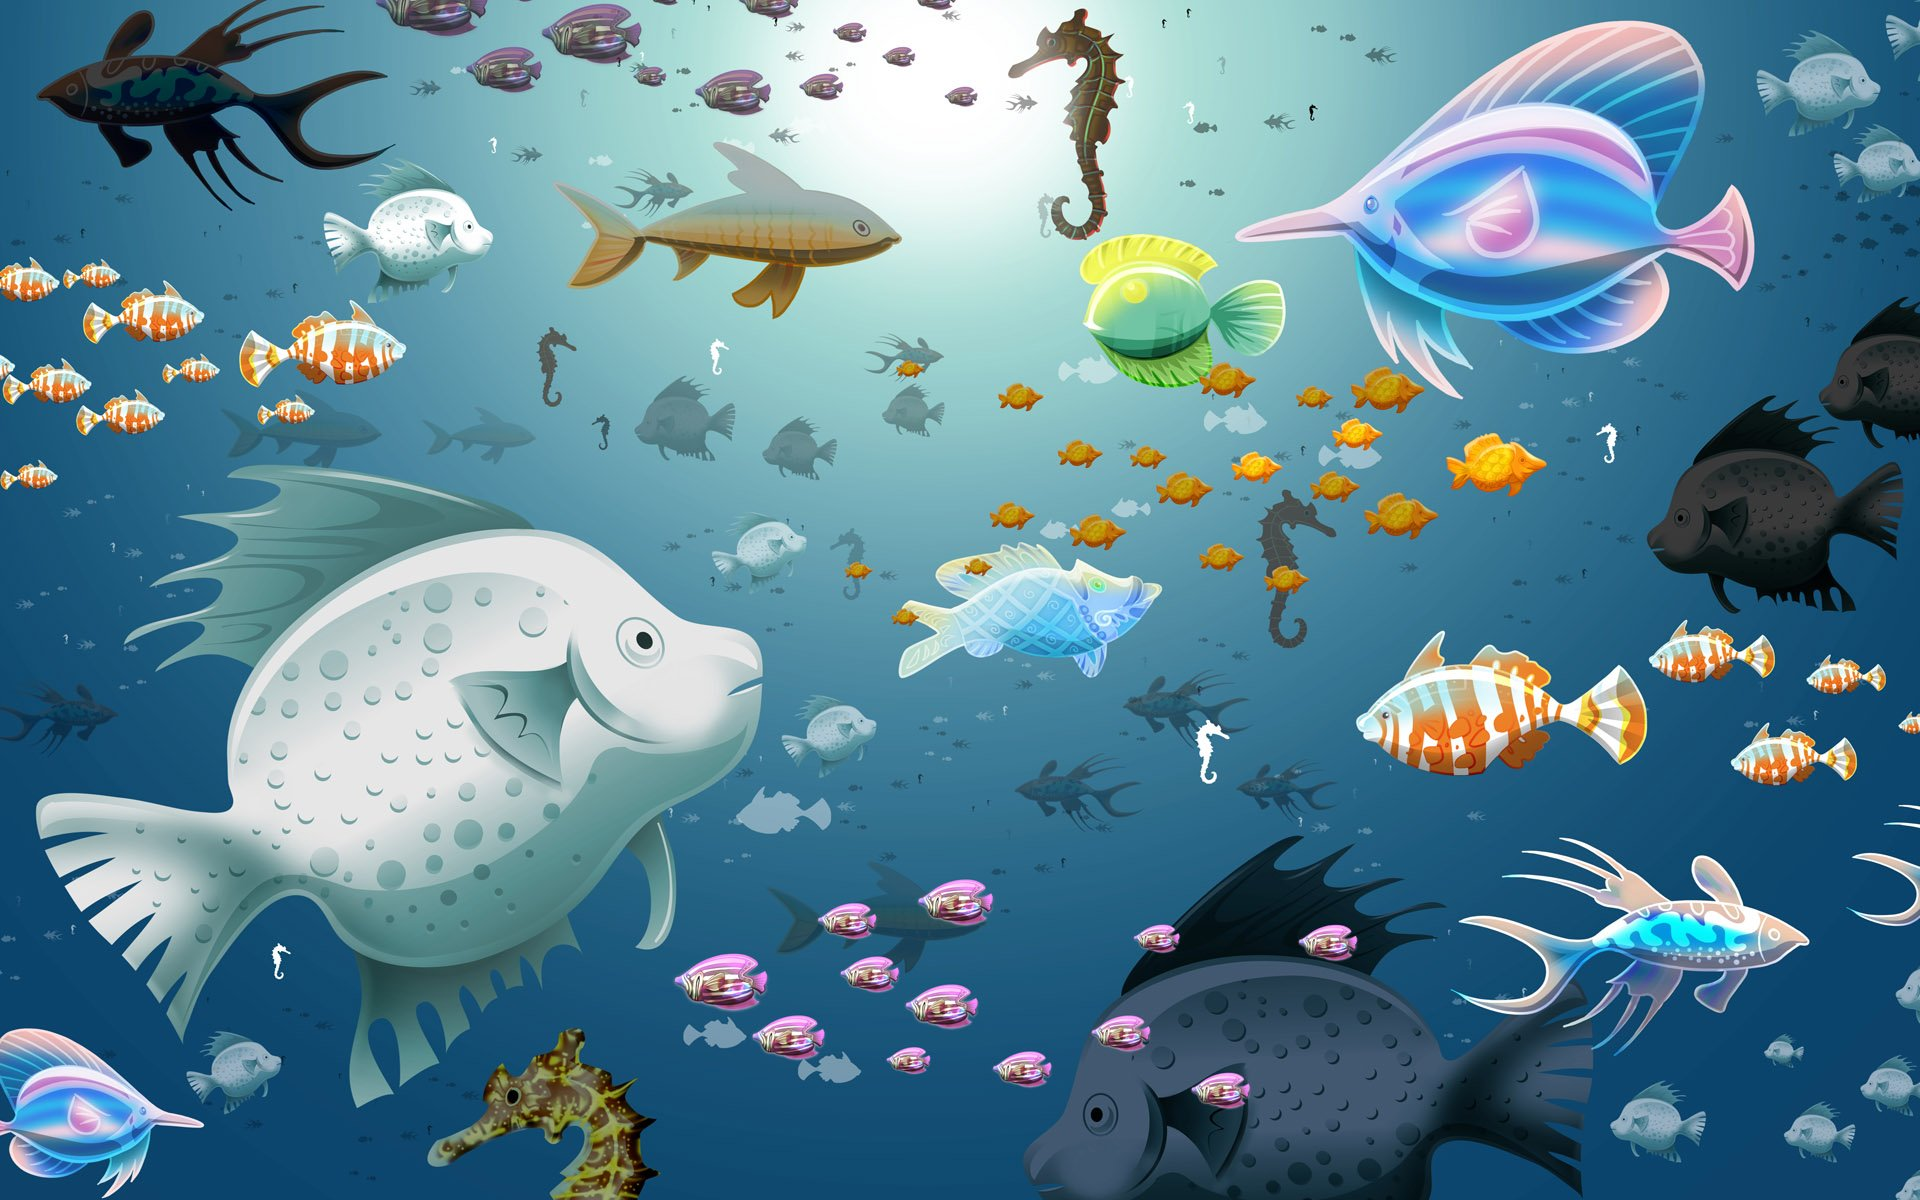 Animated Aquarium Fish HD Wallpaper